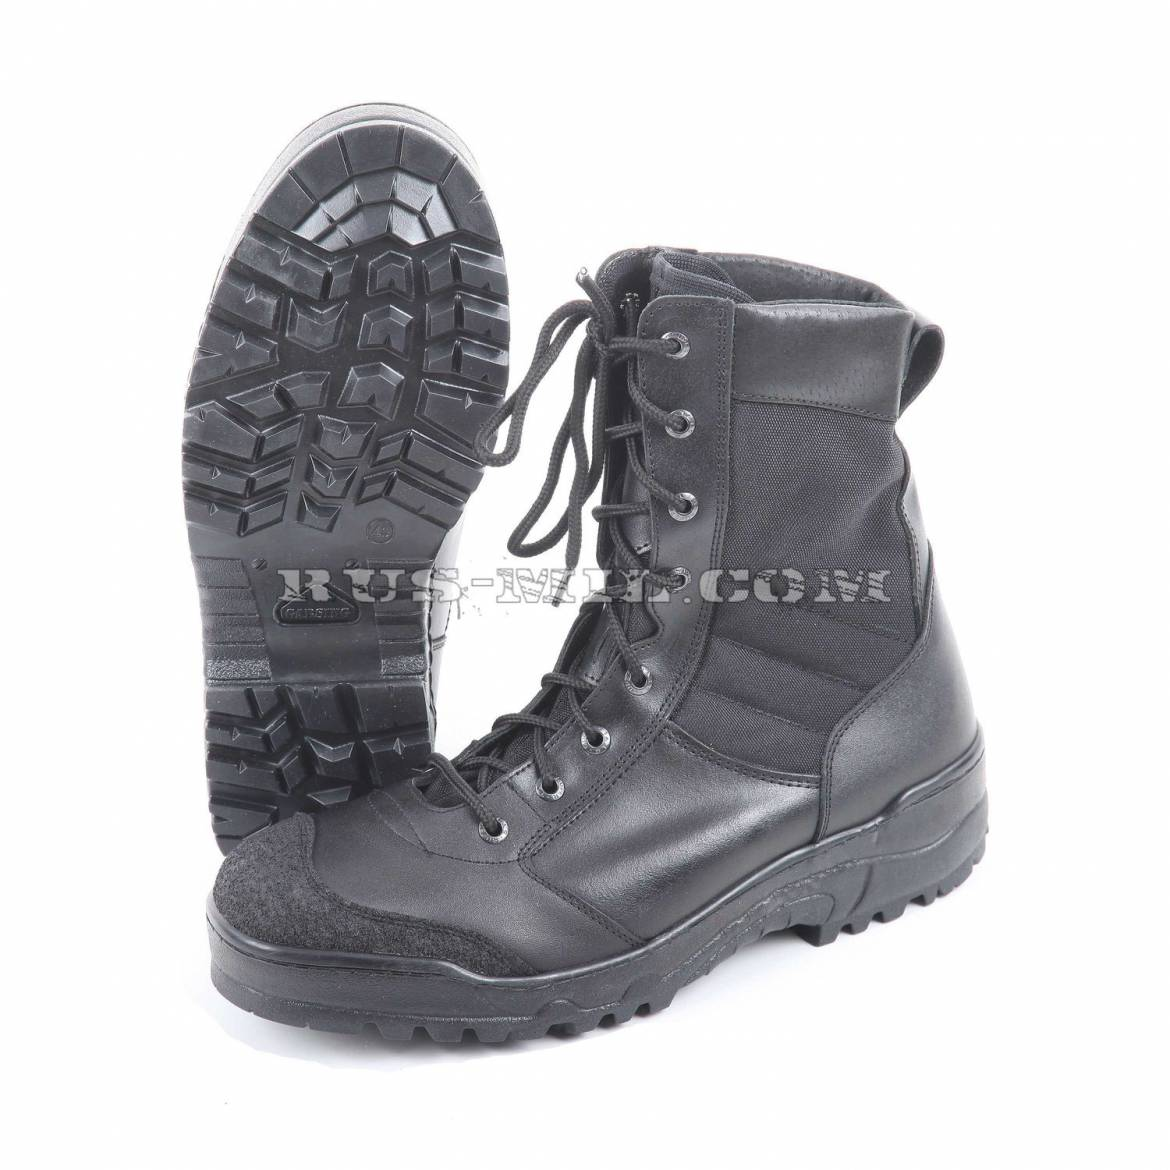 Russian-army-Boots-Garsing-G.R.O.M.-m.-339-black-at-low-price.jpg